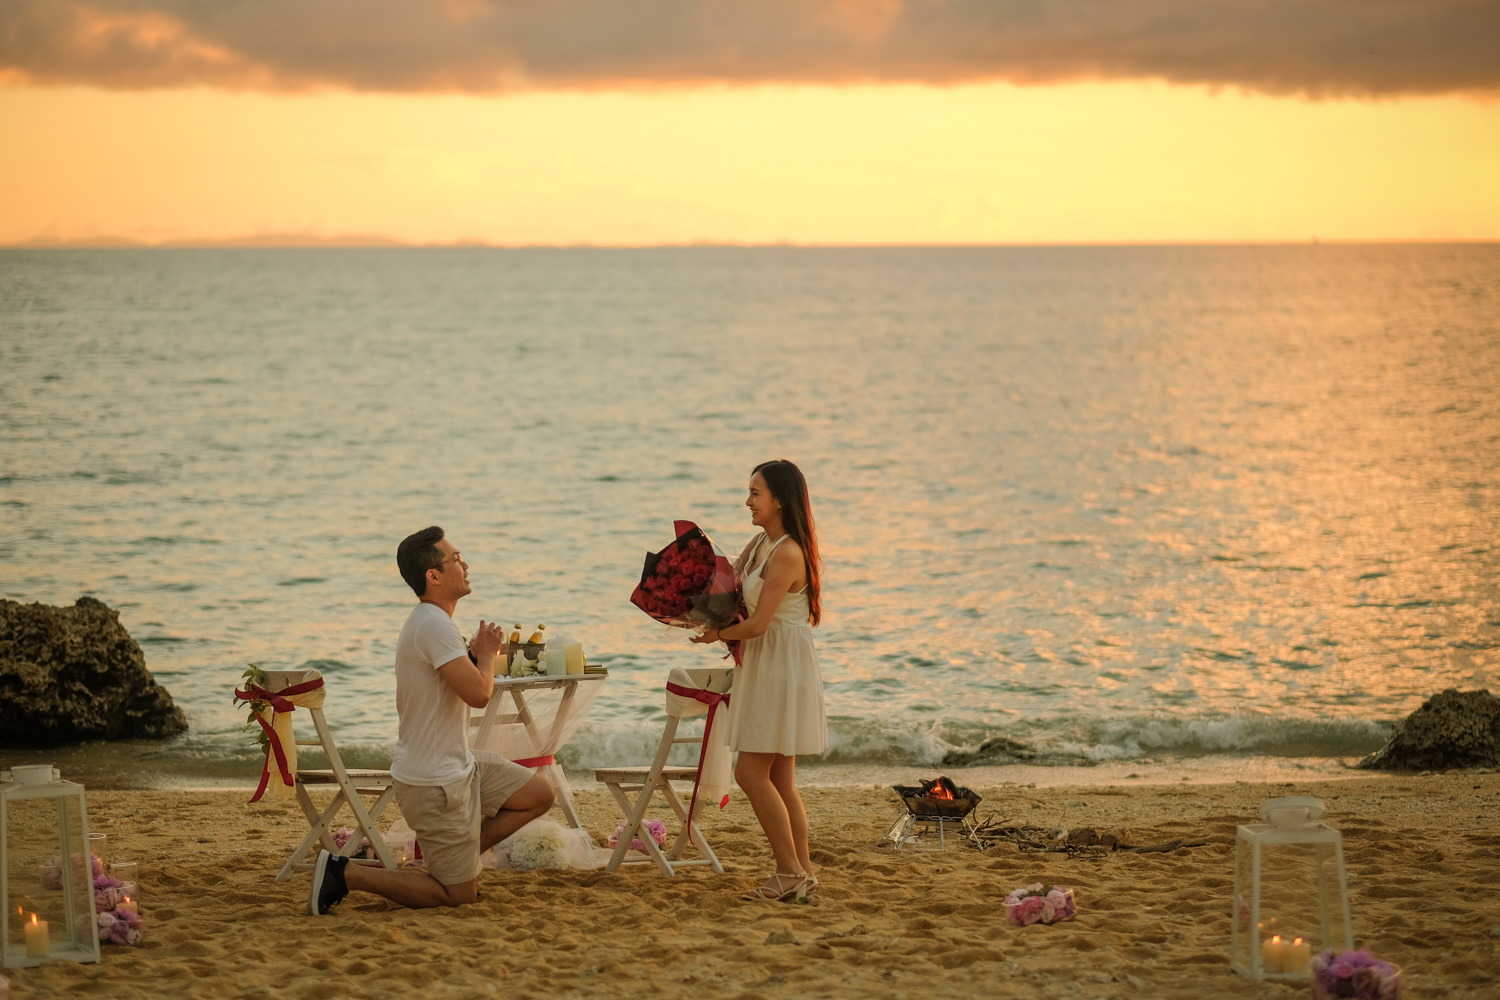 Propose on beach sunset time in Okinawa